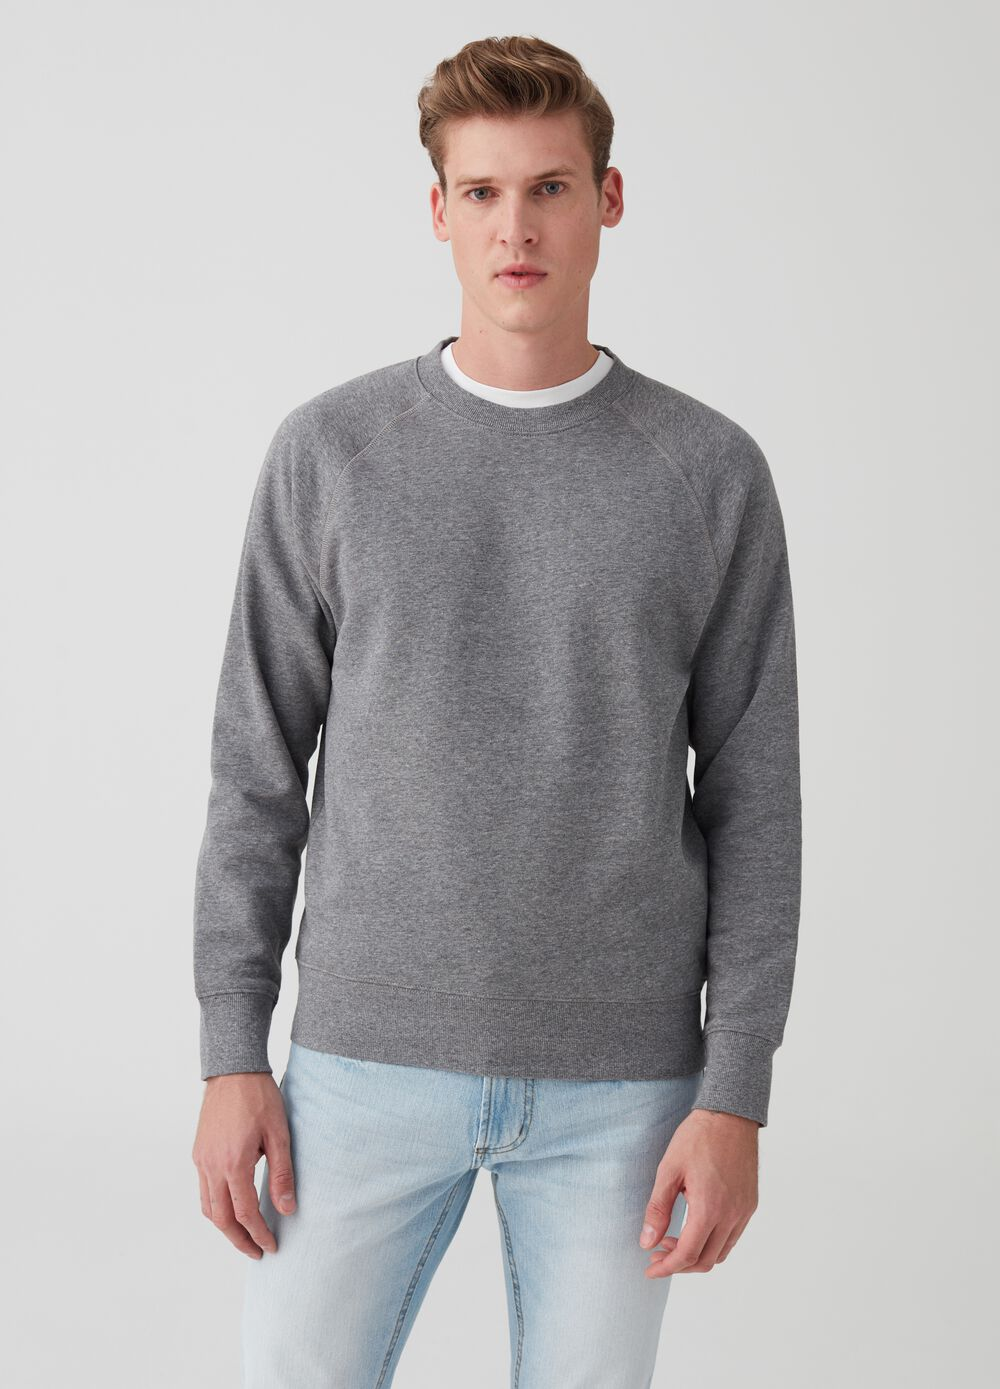 Mélange sweatshirt with round neck